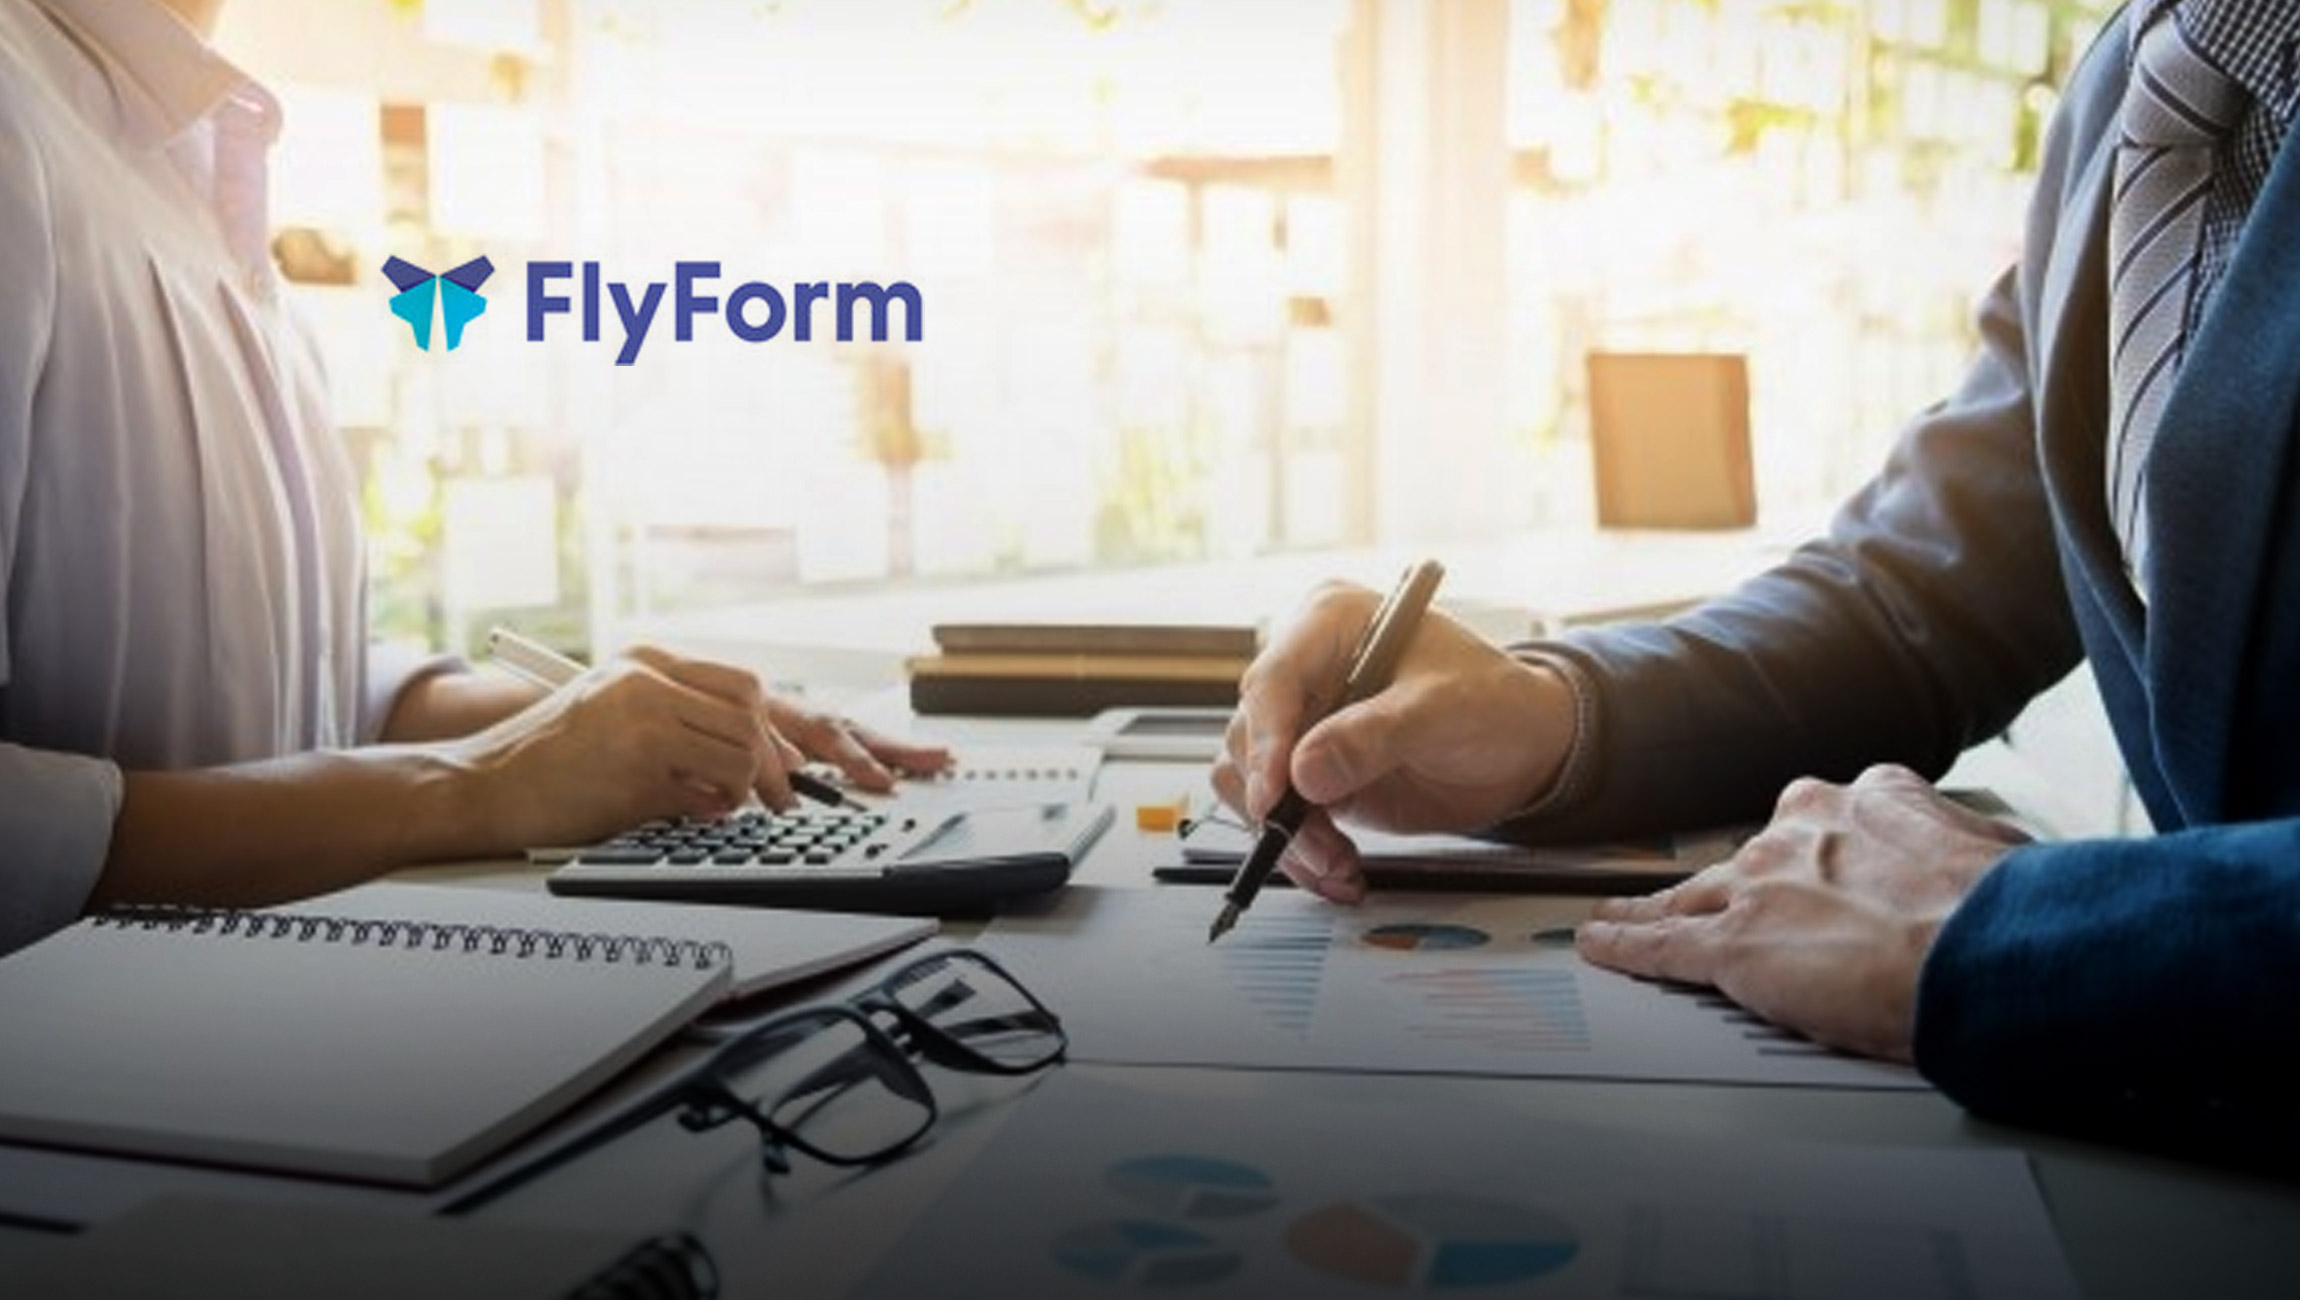 FlyForm Receives Investment From Lloyds Bank to Accelerate £1bn Growth Plan